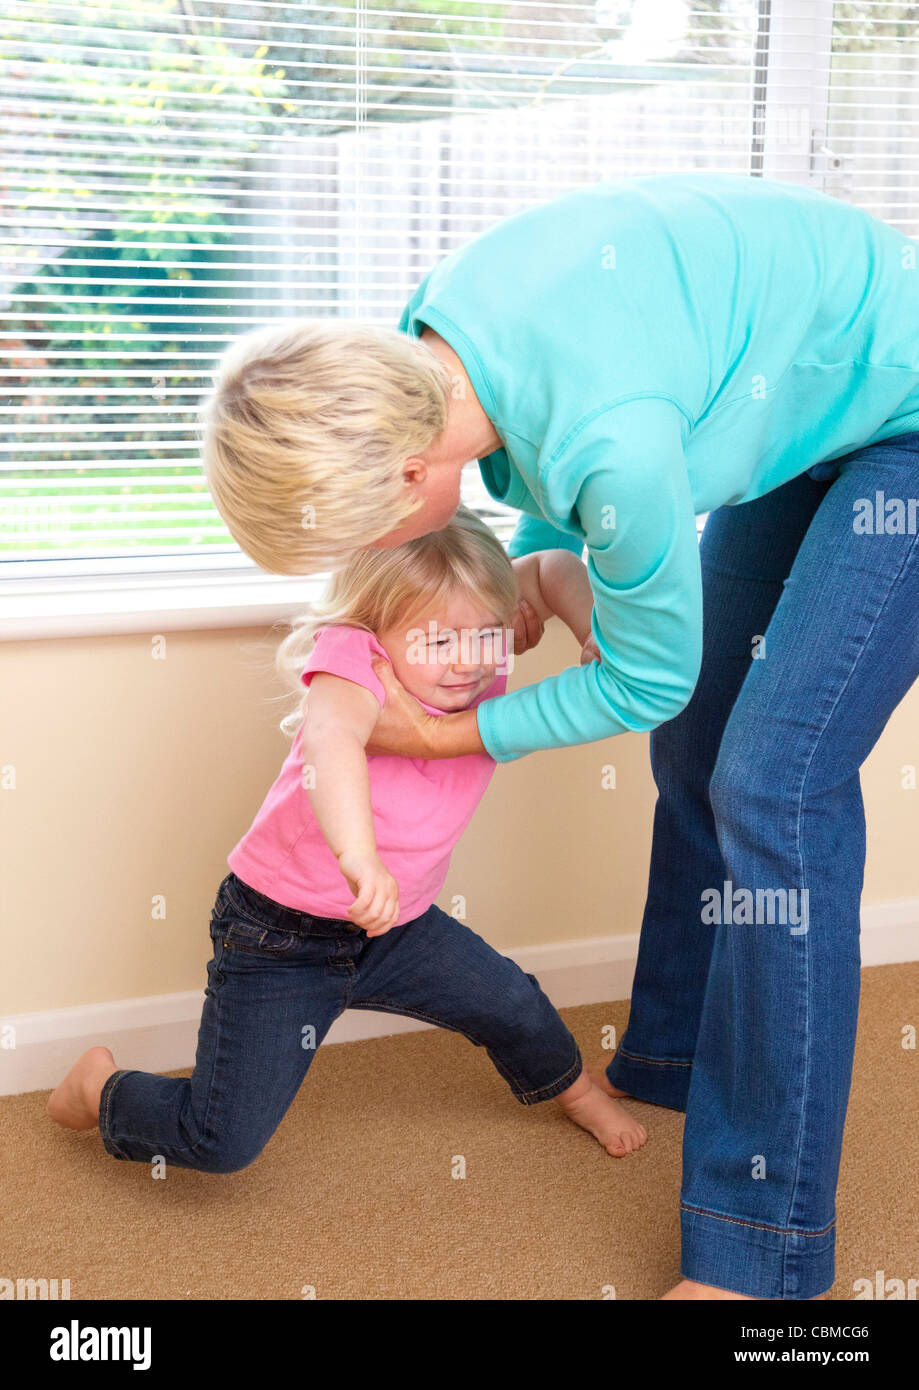 mother with child badly behaving - Stock Image